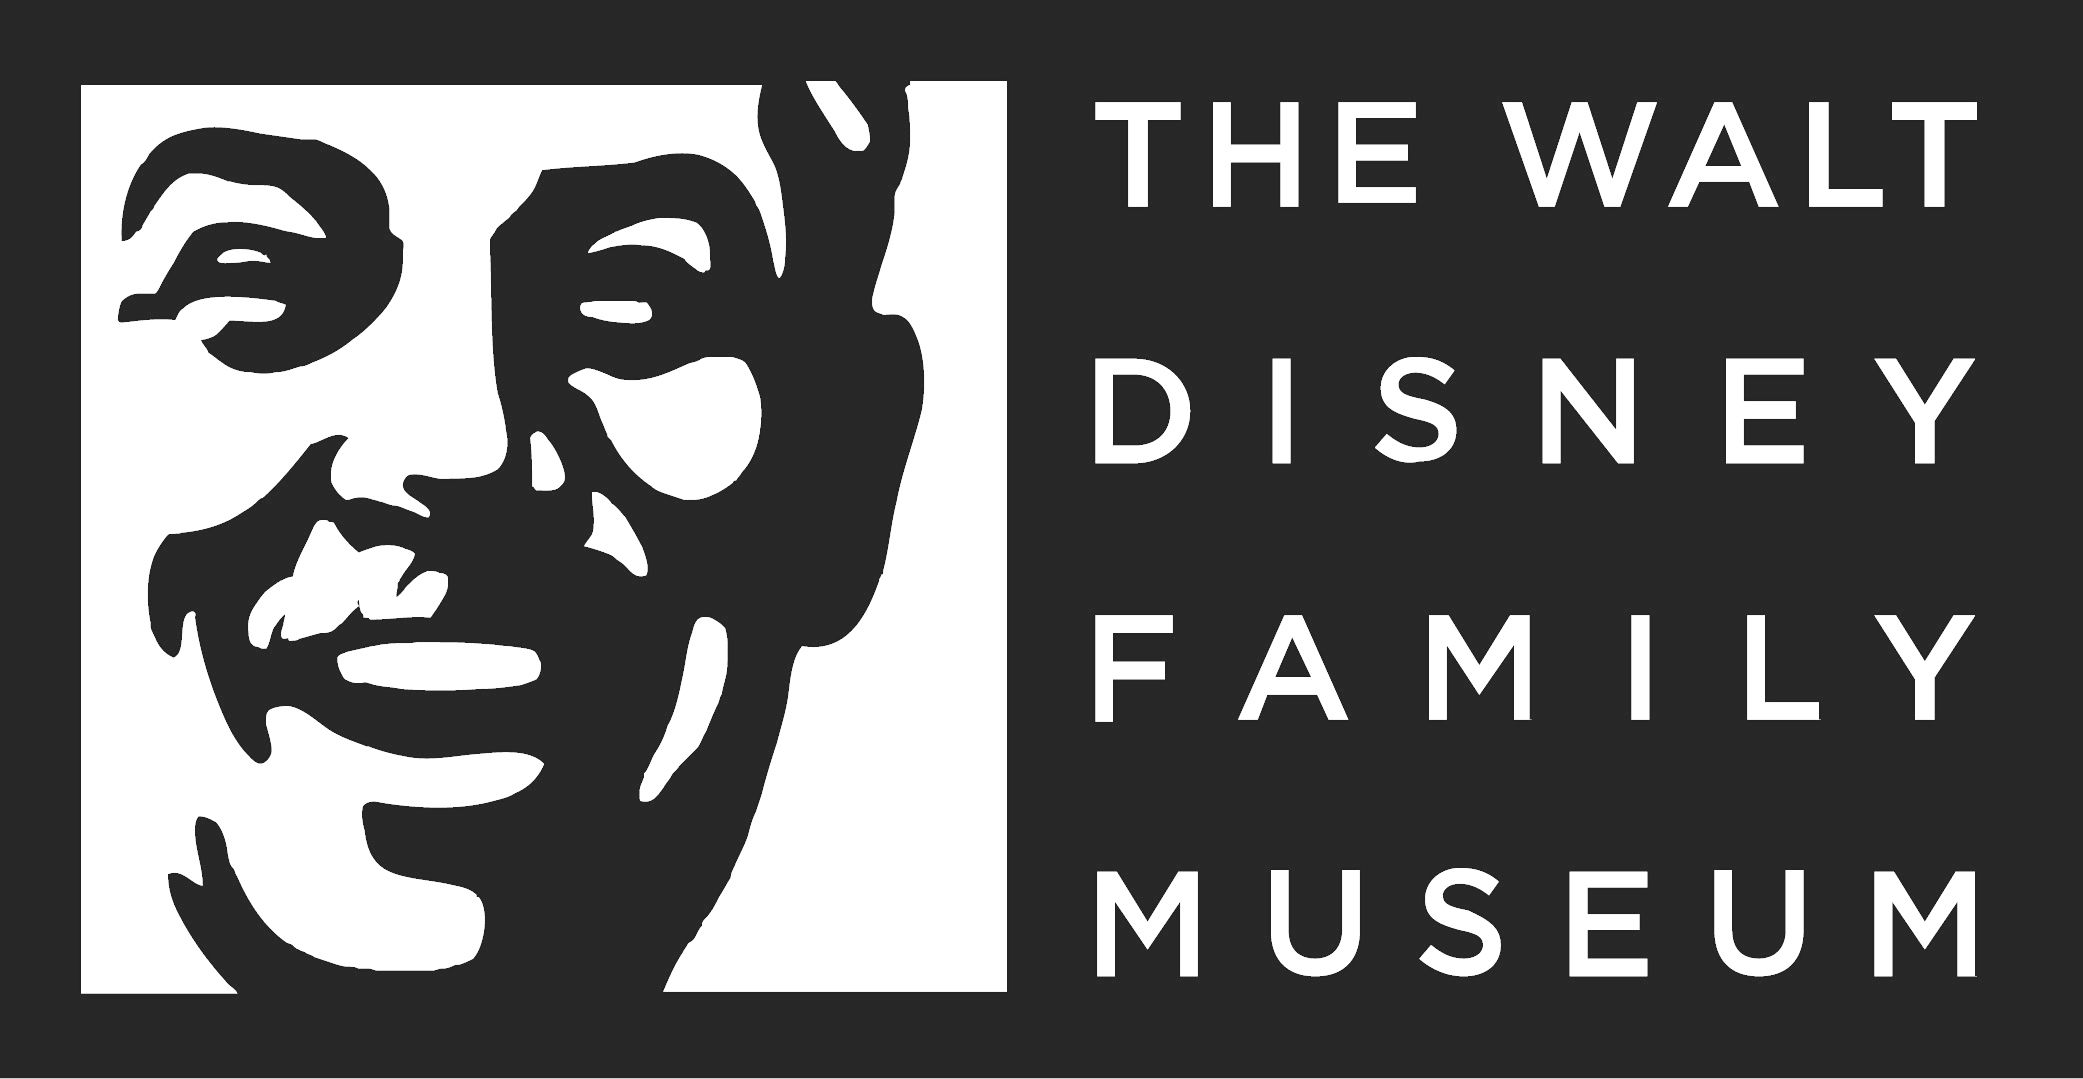 The Walt Disney Family Musem